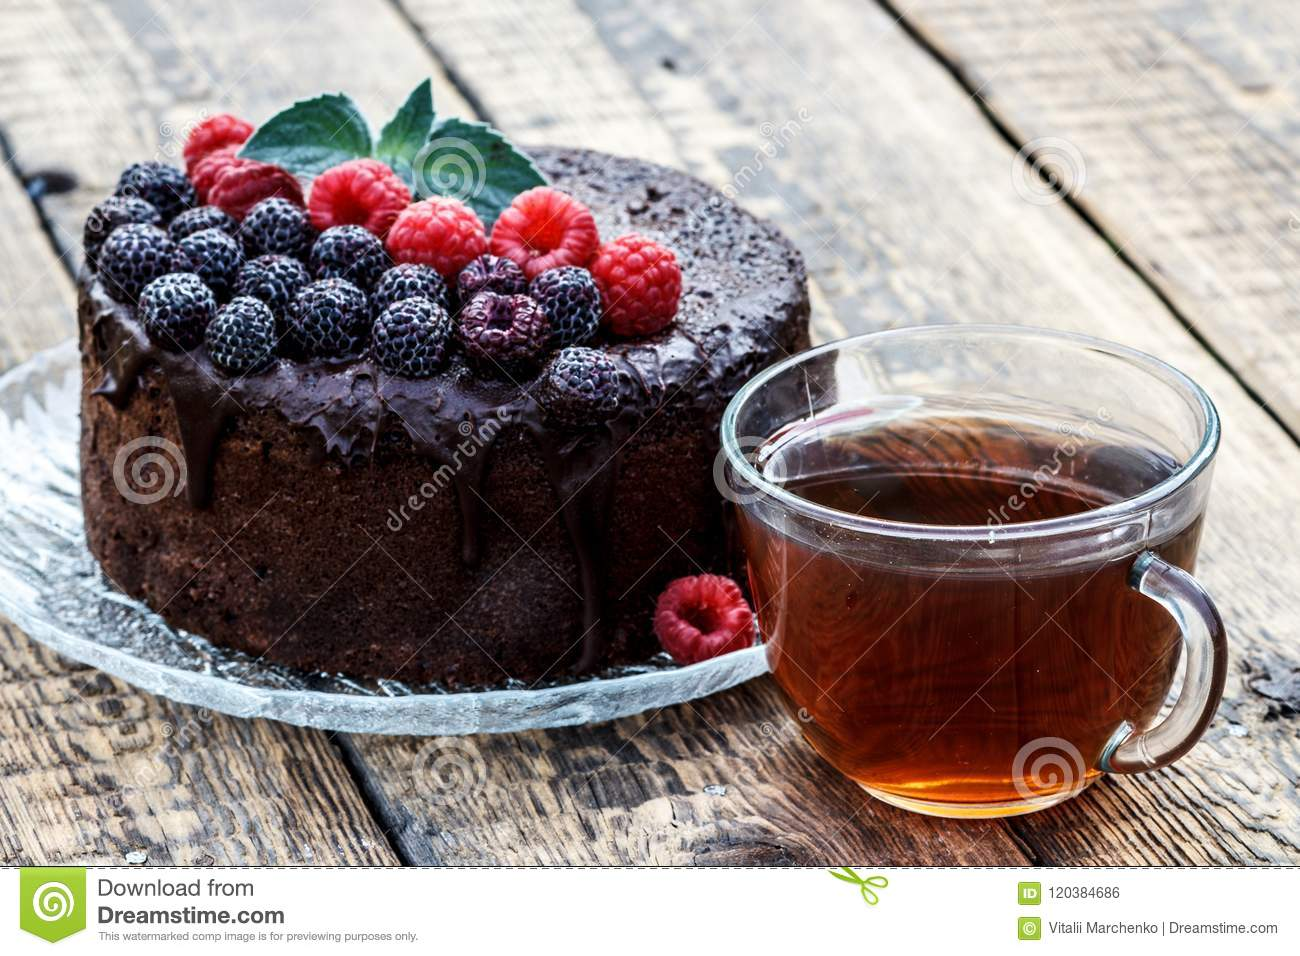 Homemade Chocolate Cake Decorated With Black And Red Raspberries